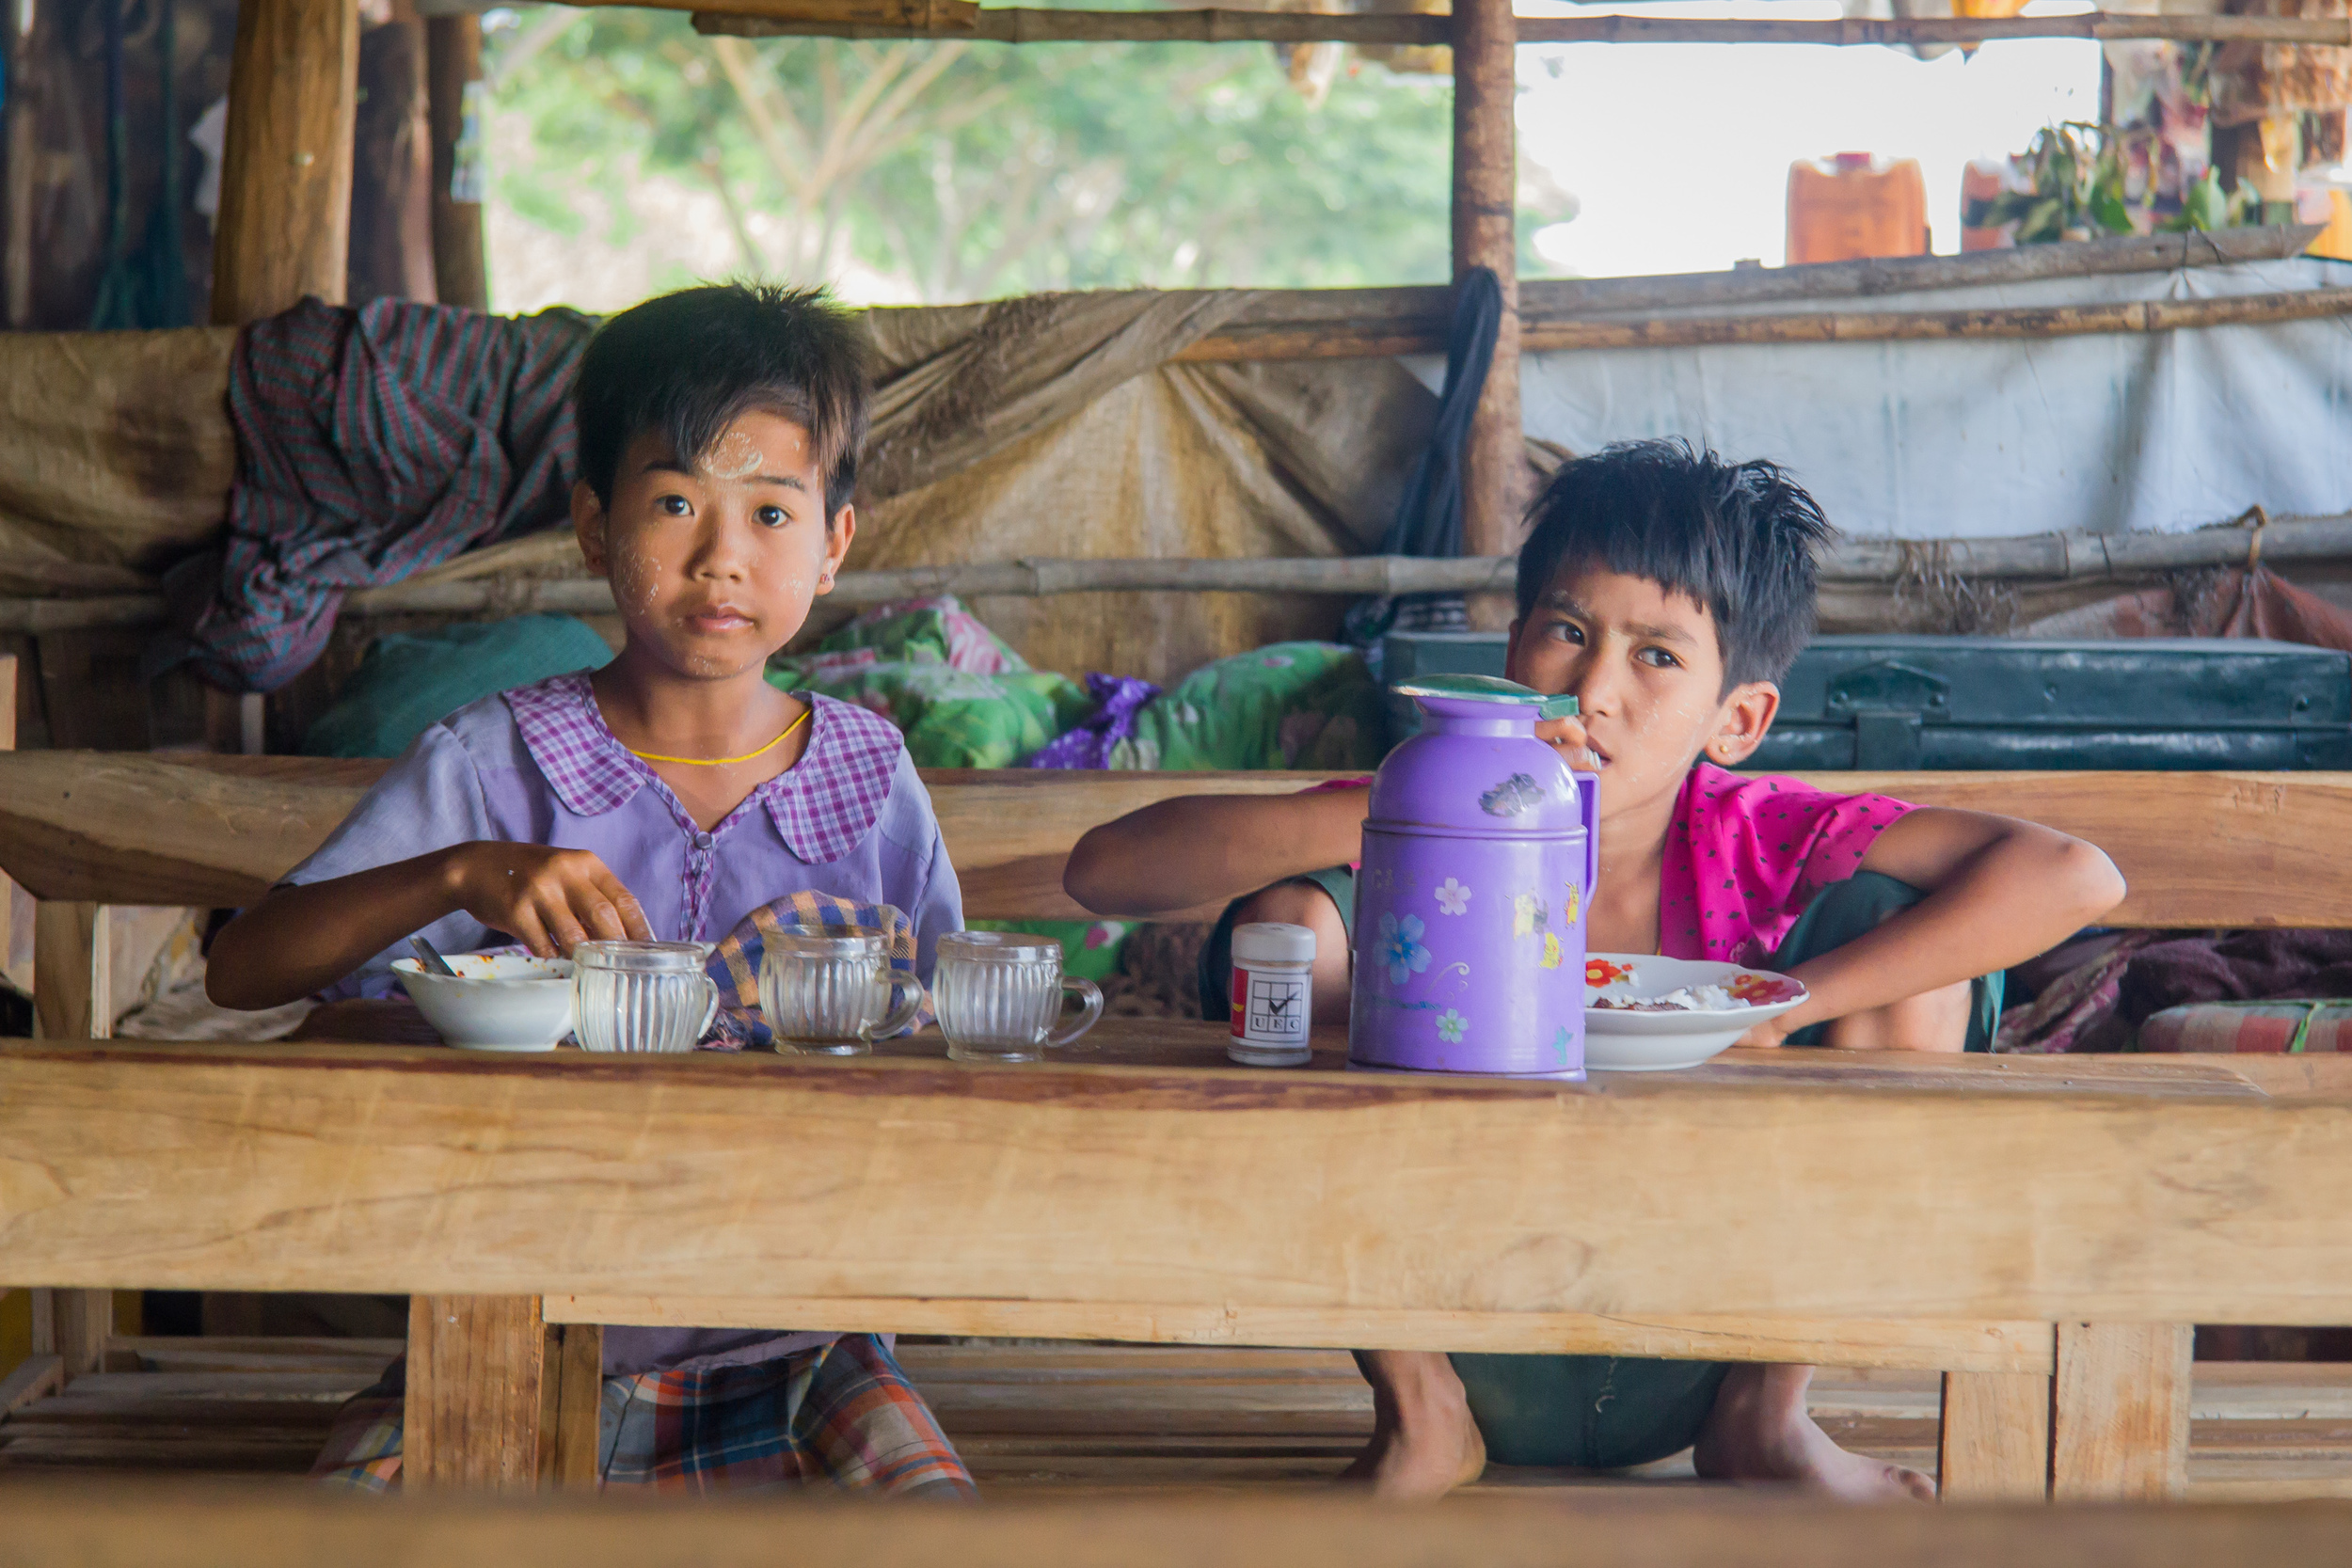 This cheeky duo served us some lunch in fits of laughter before tucking into their own at a popup roadside eatery near Napyidaw. Notice the purely decorative thanaka on the forehead.